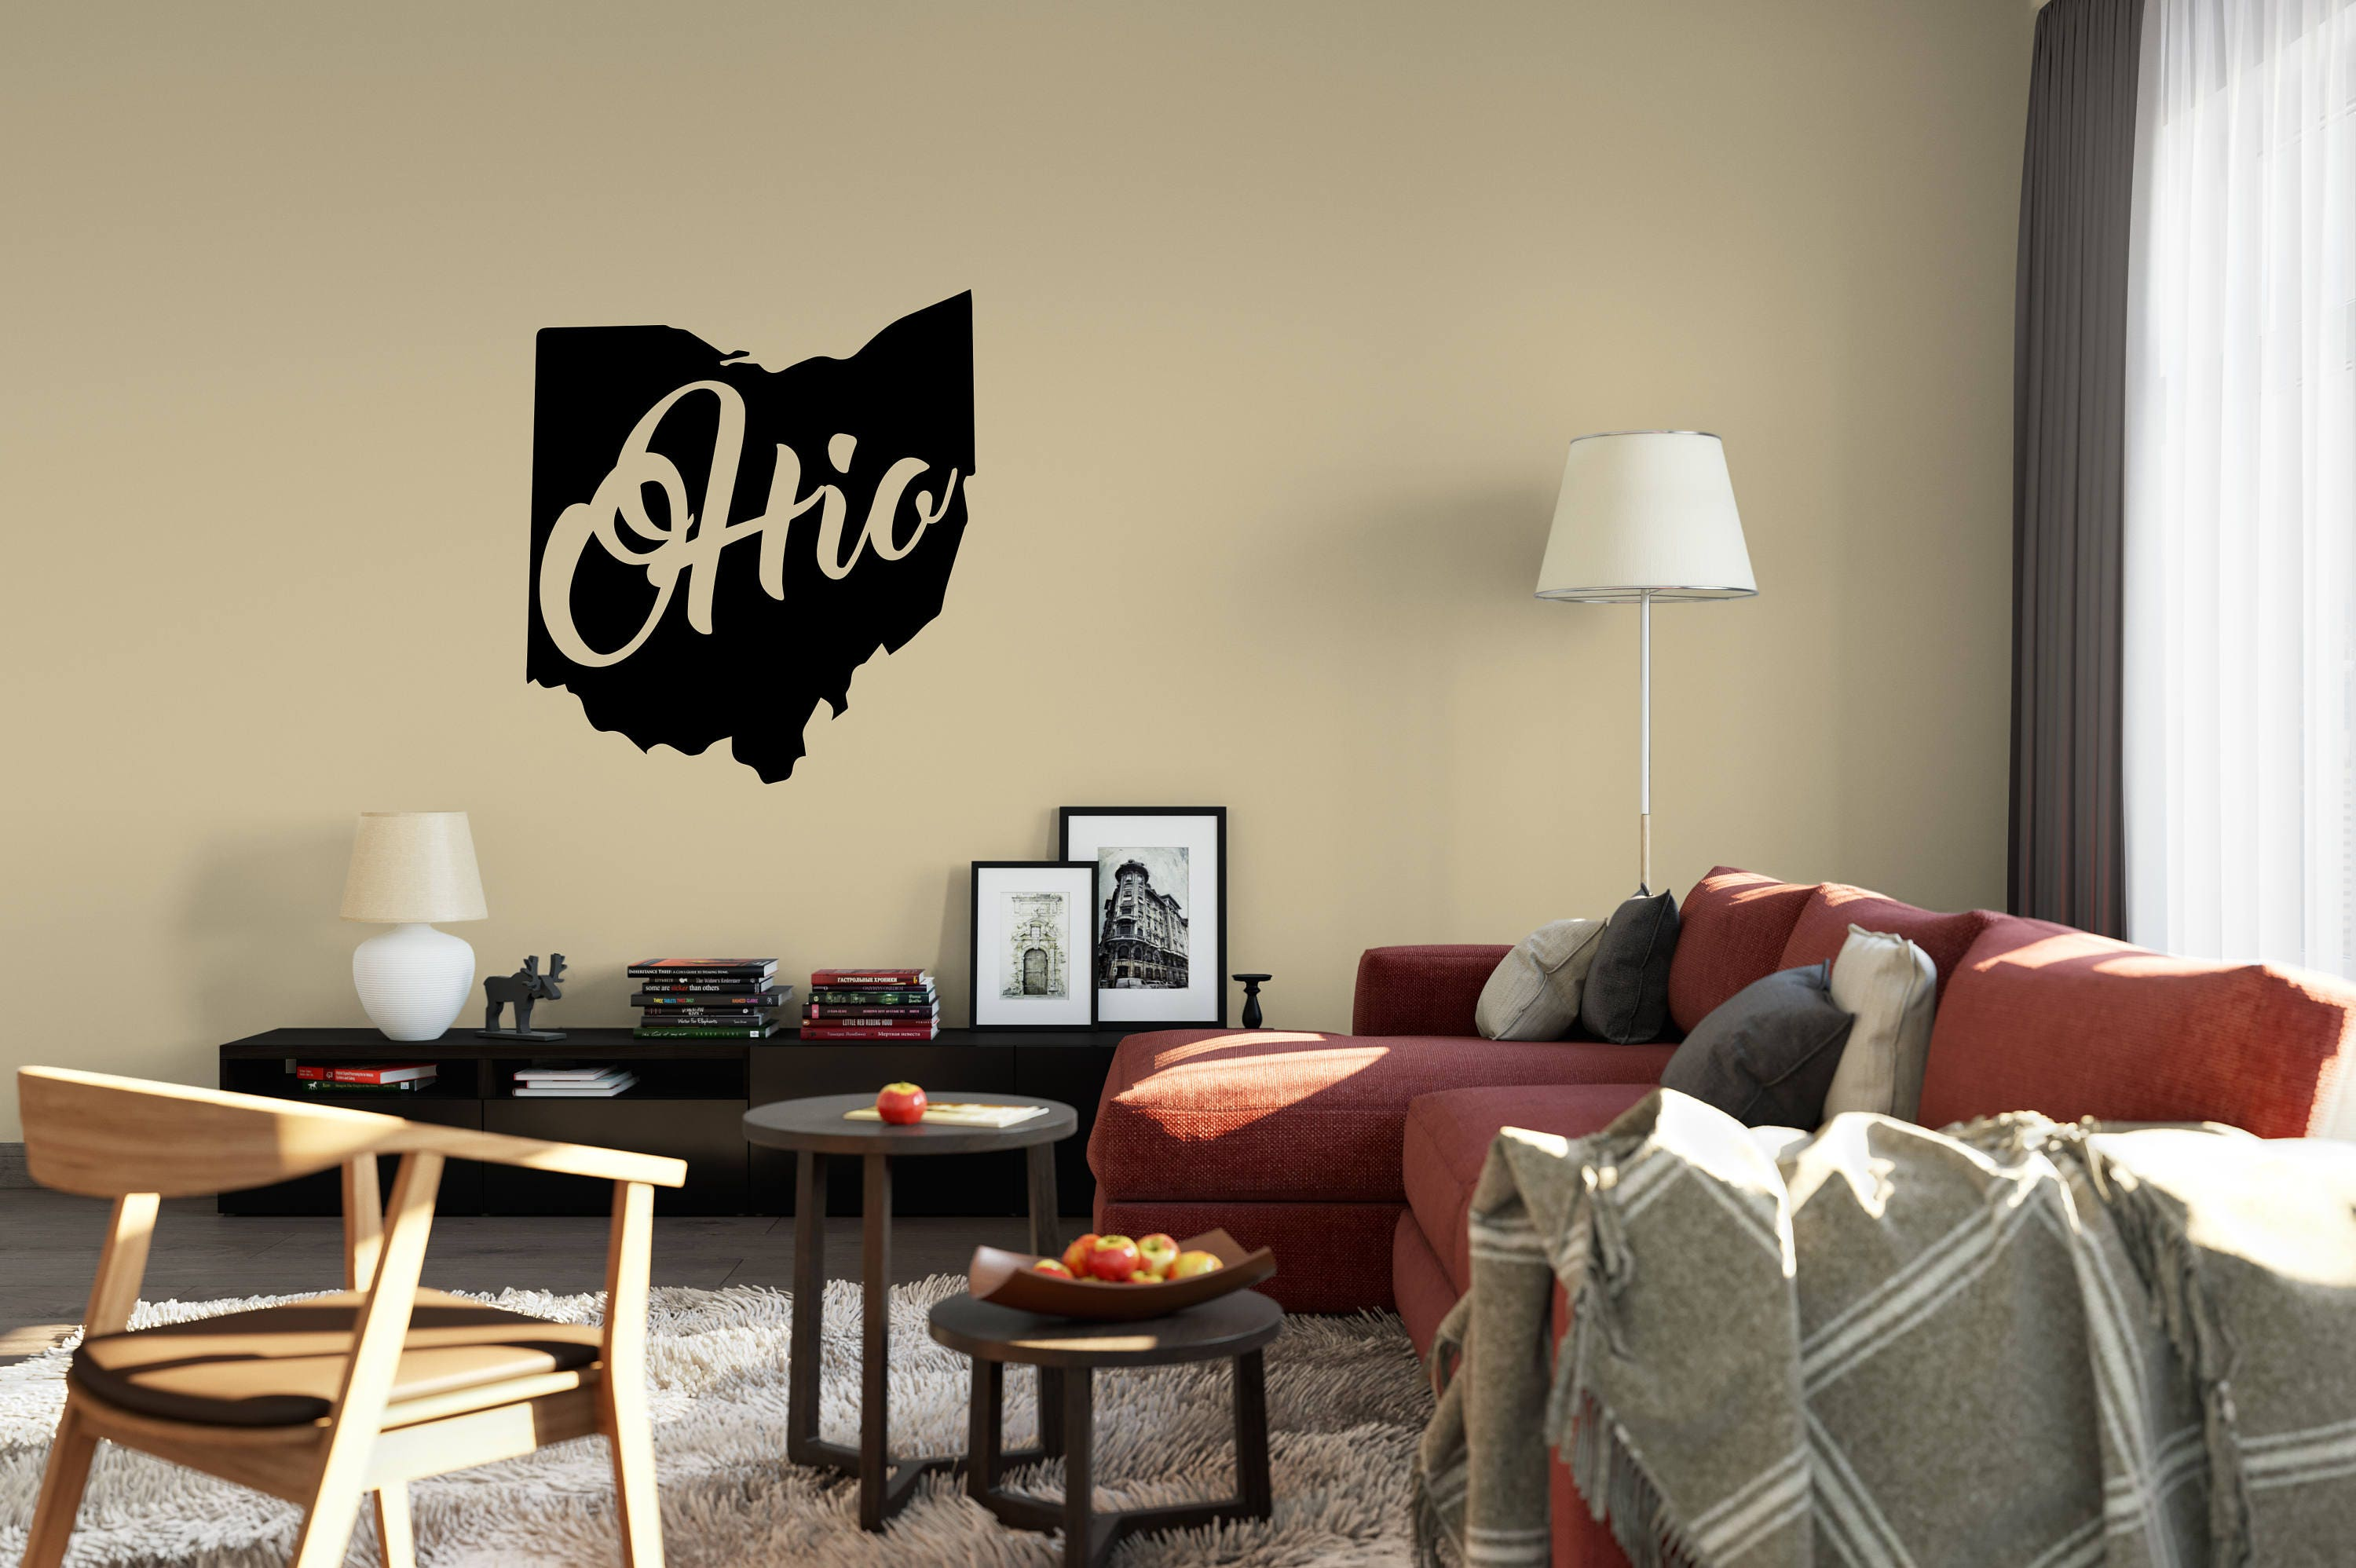 Ohio Wall Decal   Small U0026 Large Removable Vinyl Wall Decals Of Ohio State Part 85